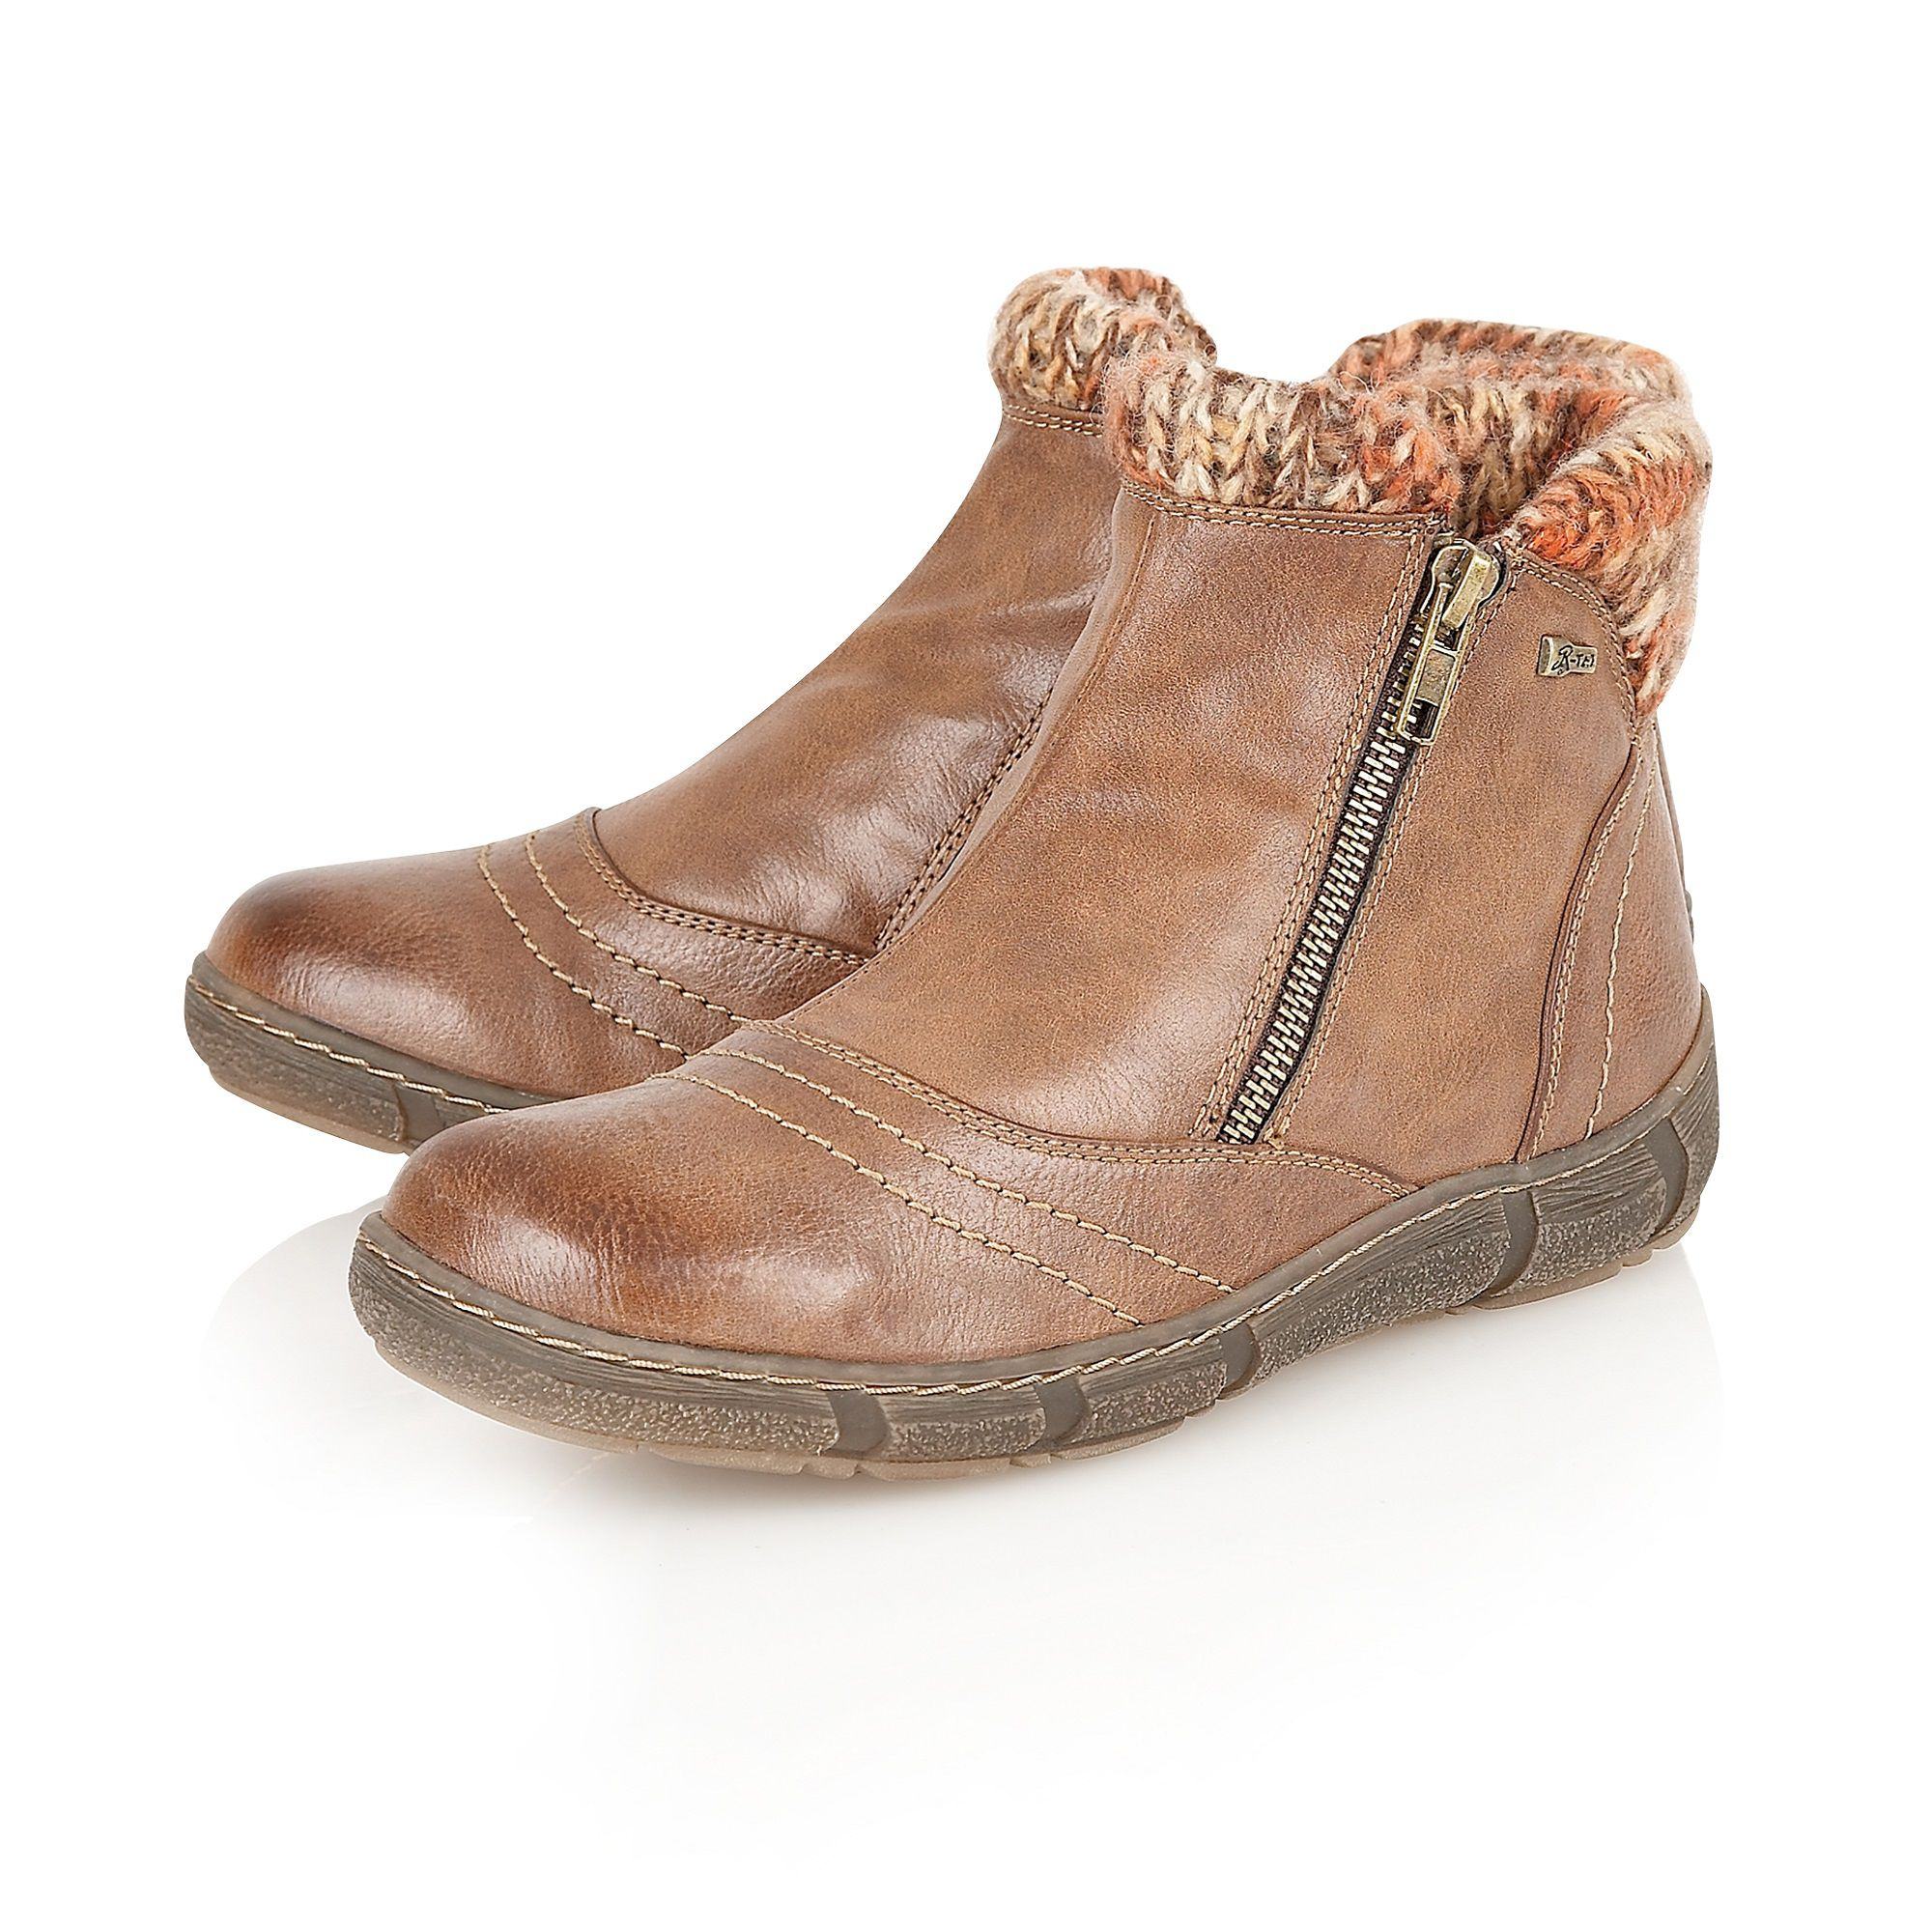 Lotus Relife Amineto Ladies` Ankle Boot in Tan (Brown)